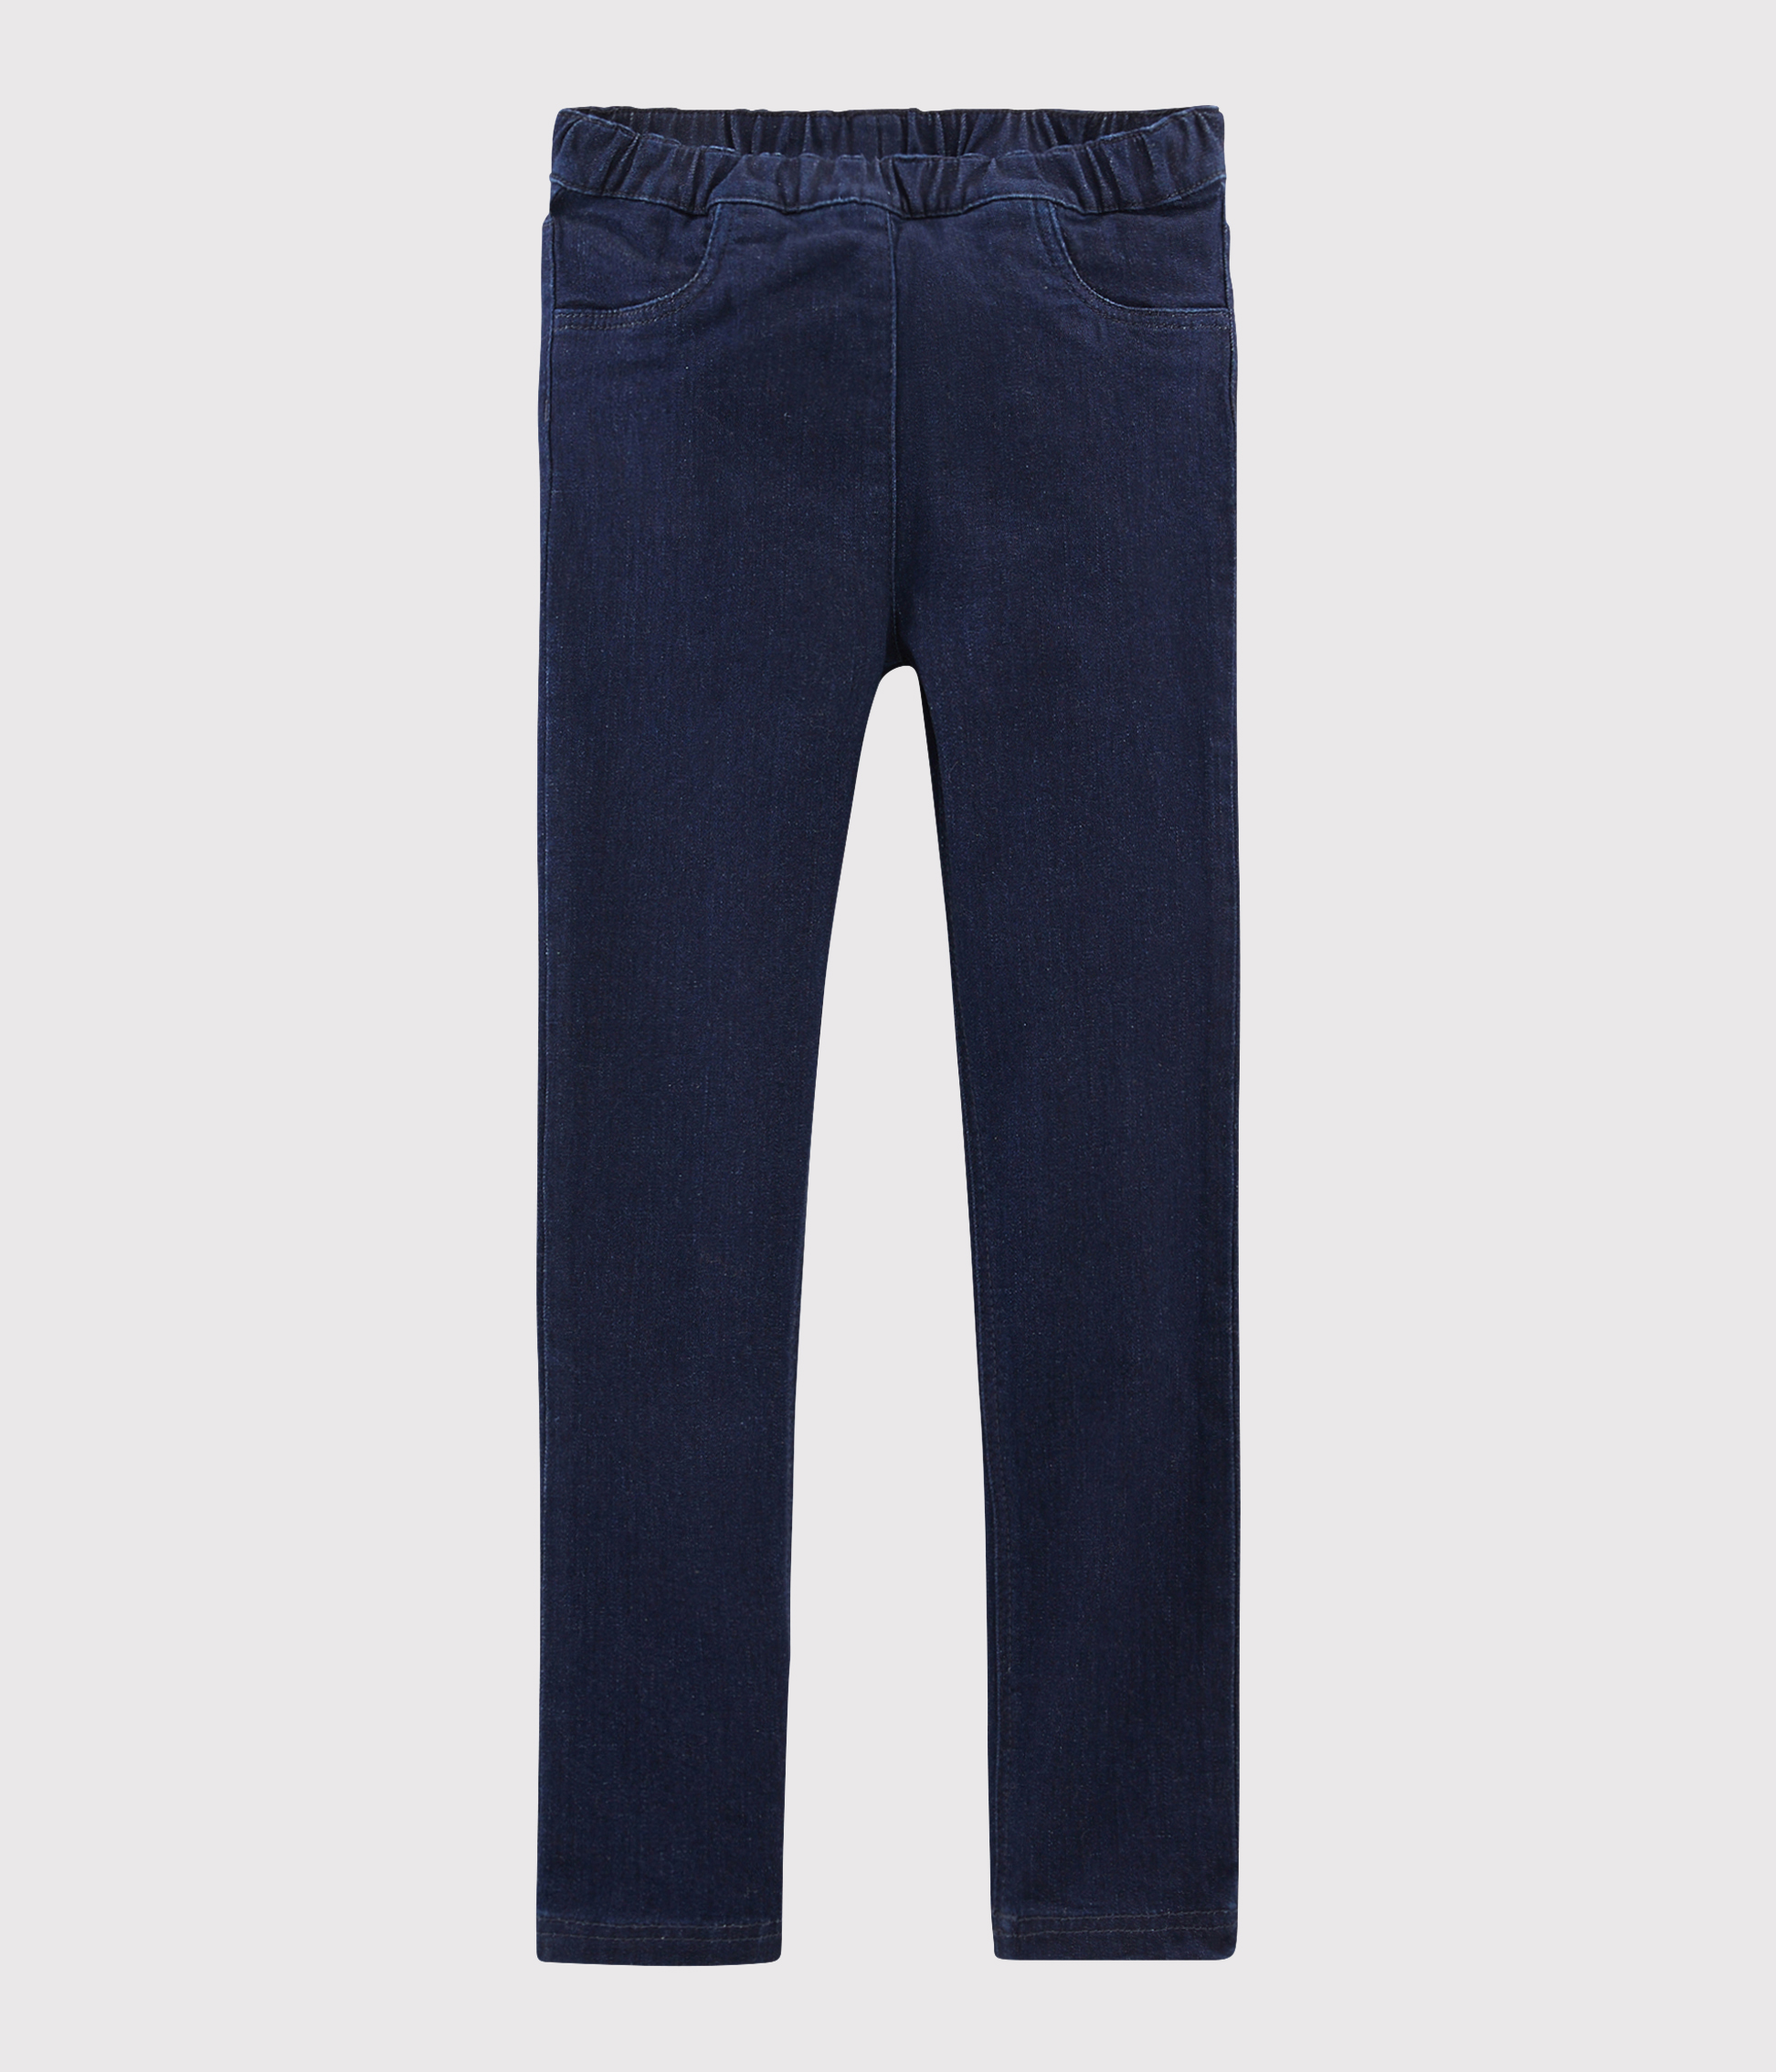 Girls' Denim Slim-Fit Trousers